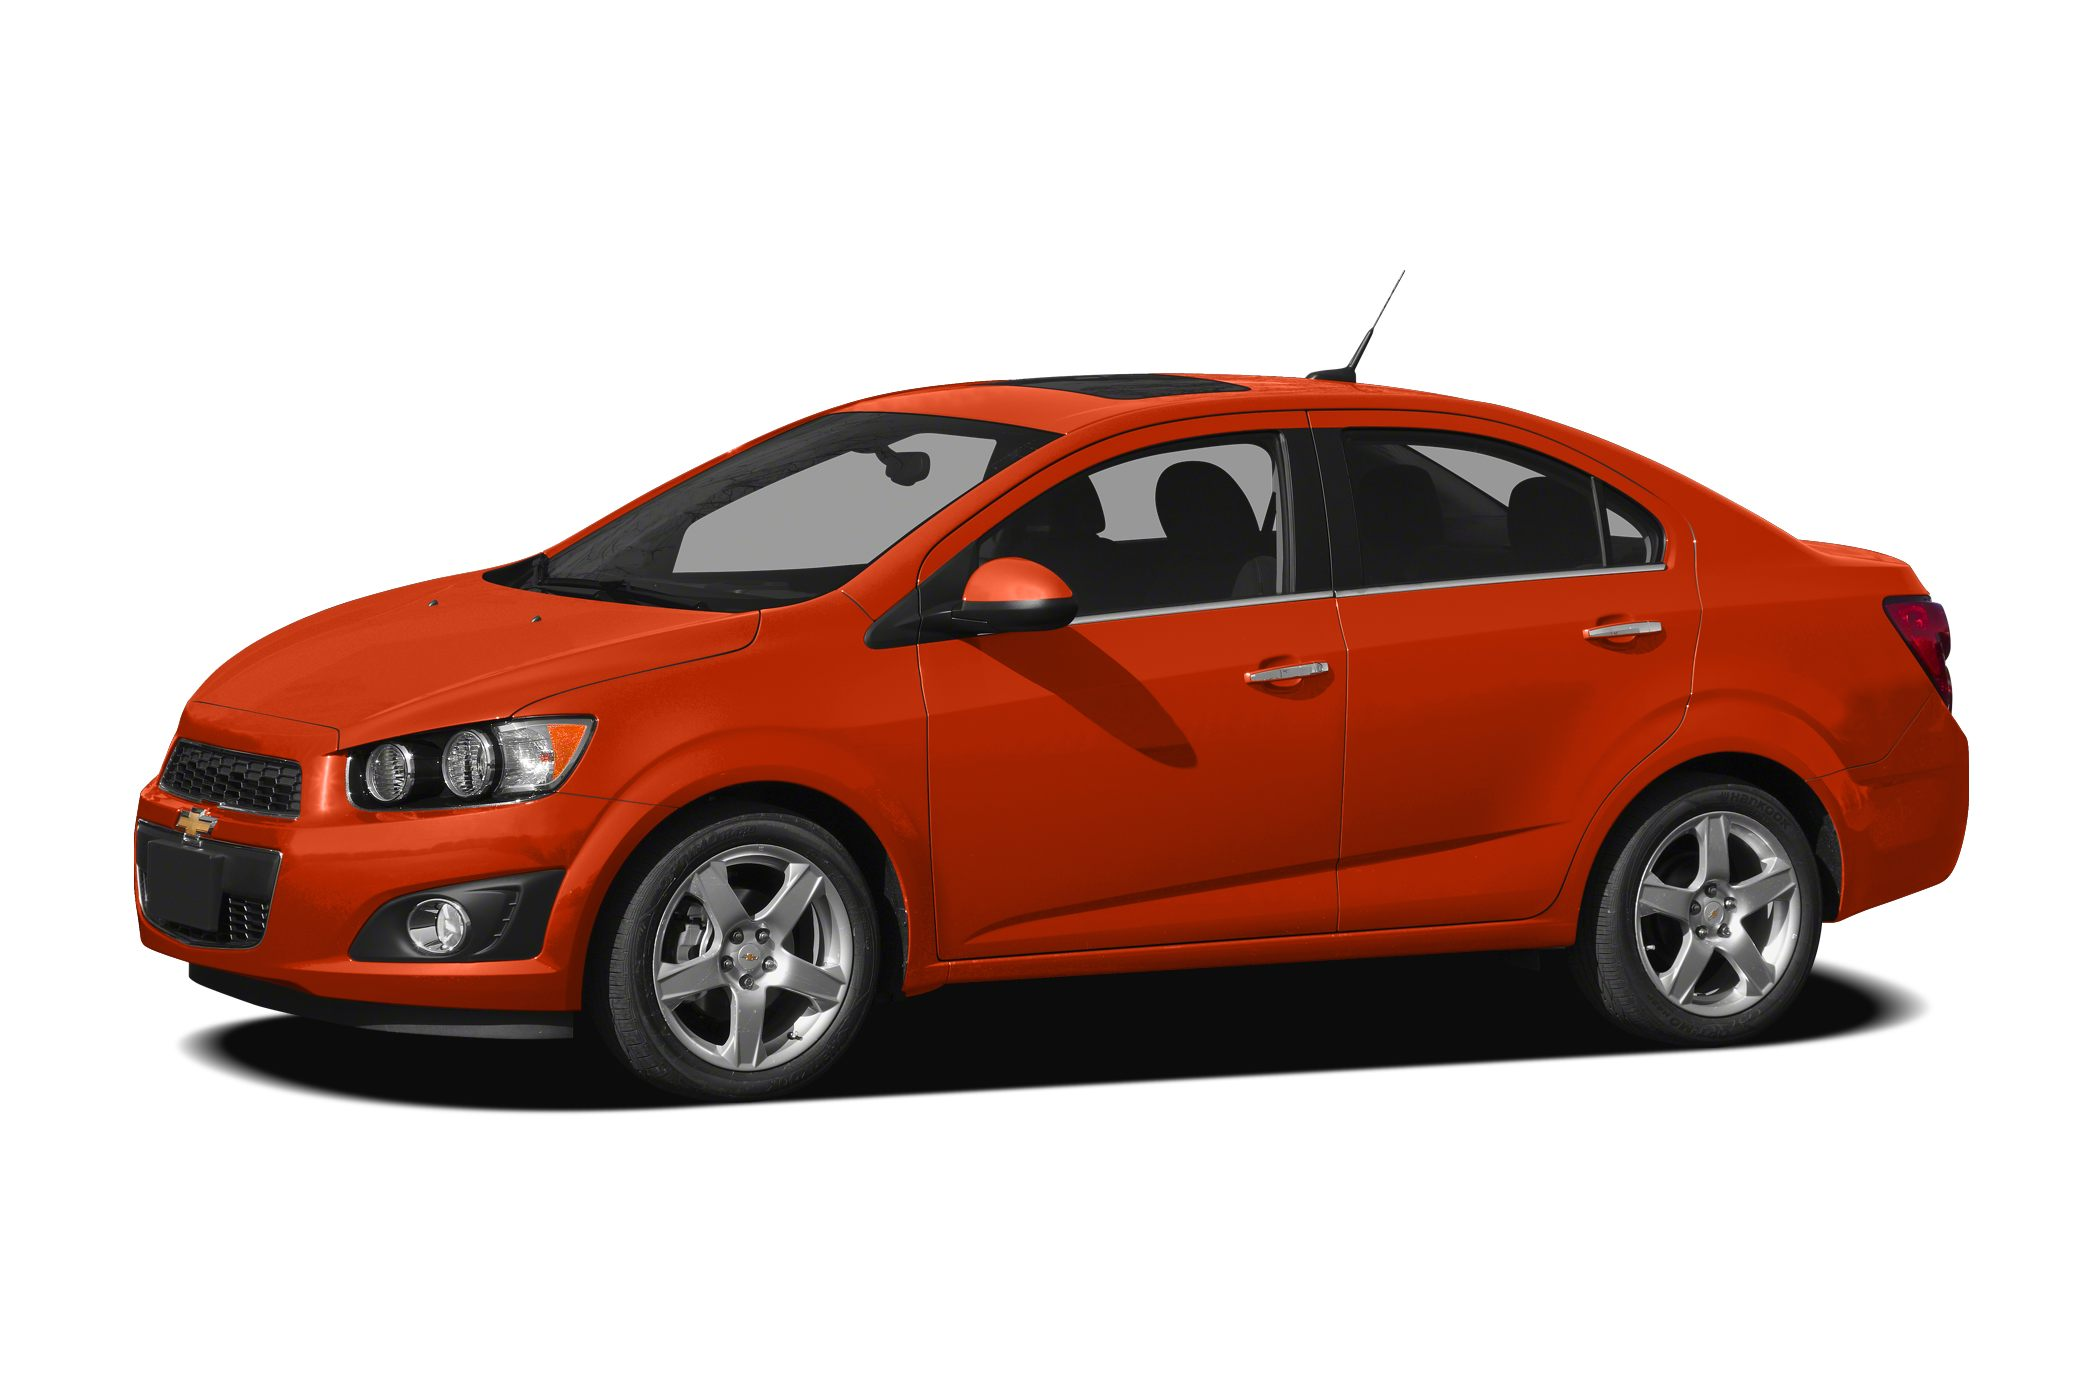 2012 Chevrolet Sonic 1LT Hatchback for sale in Toledo for $10,632 with 40,115 miles